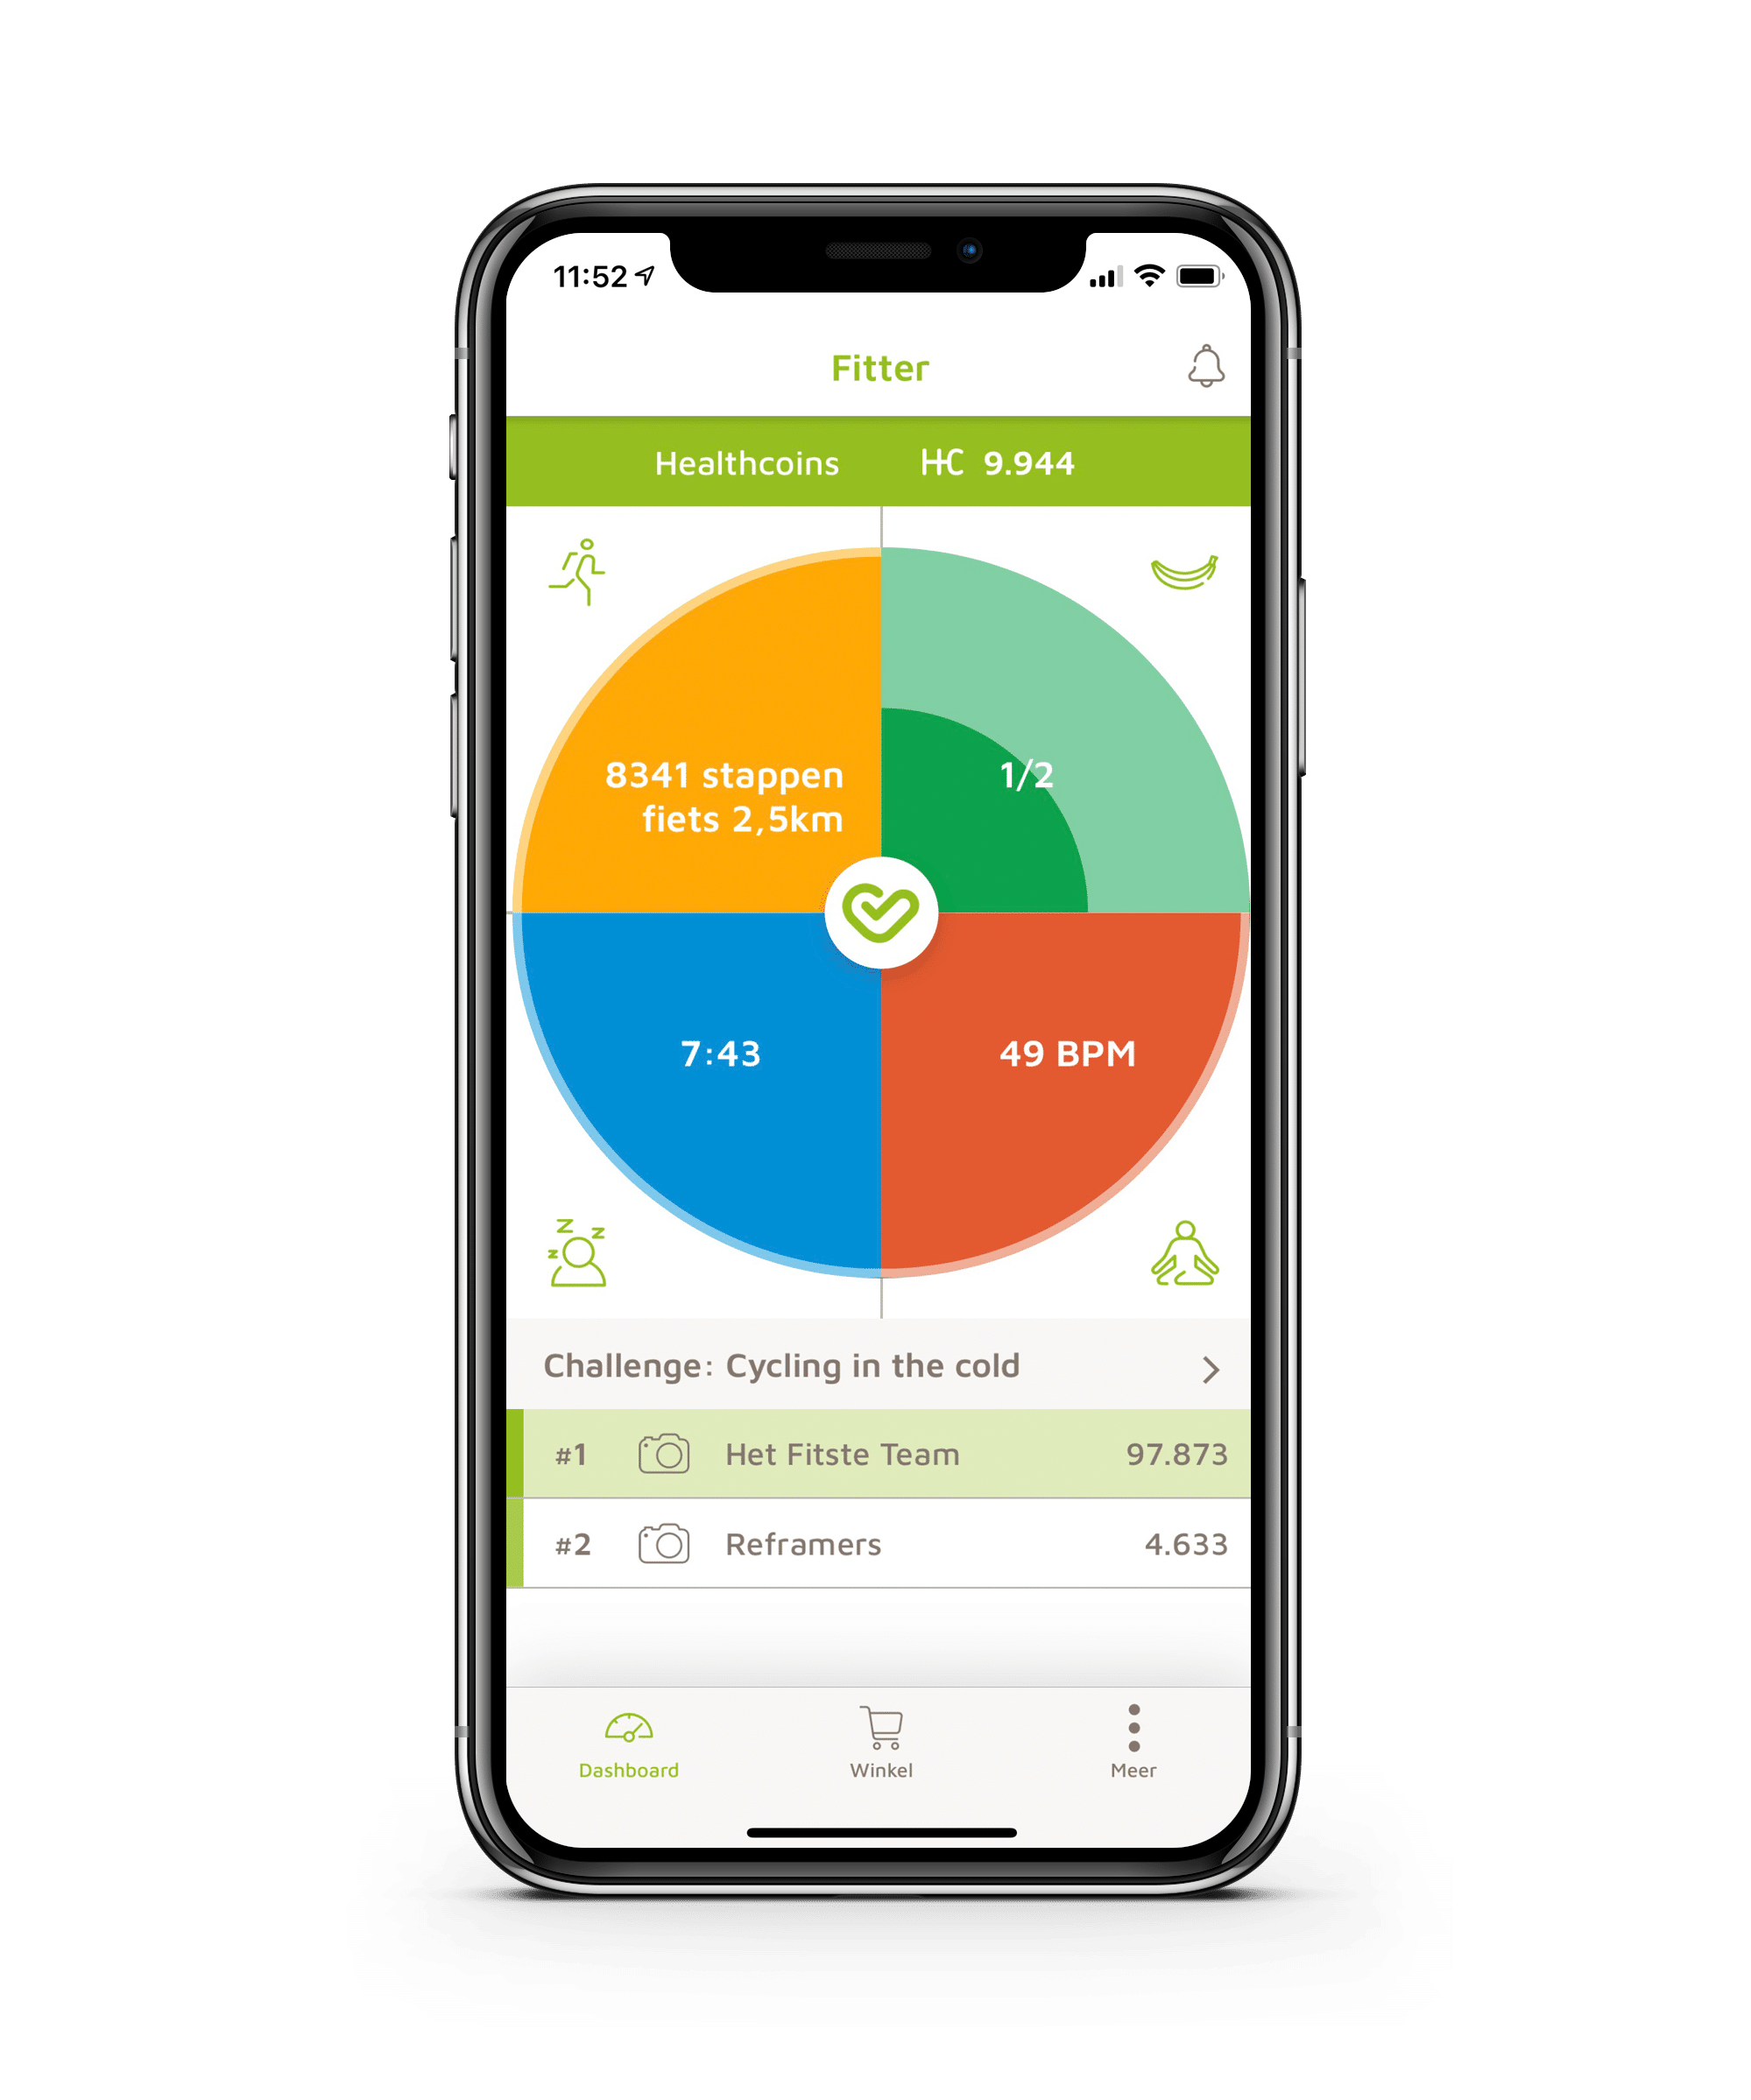 Vitaliteitsapp Biotracking